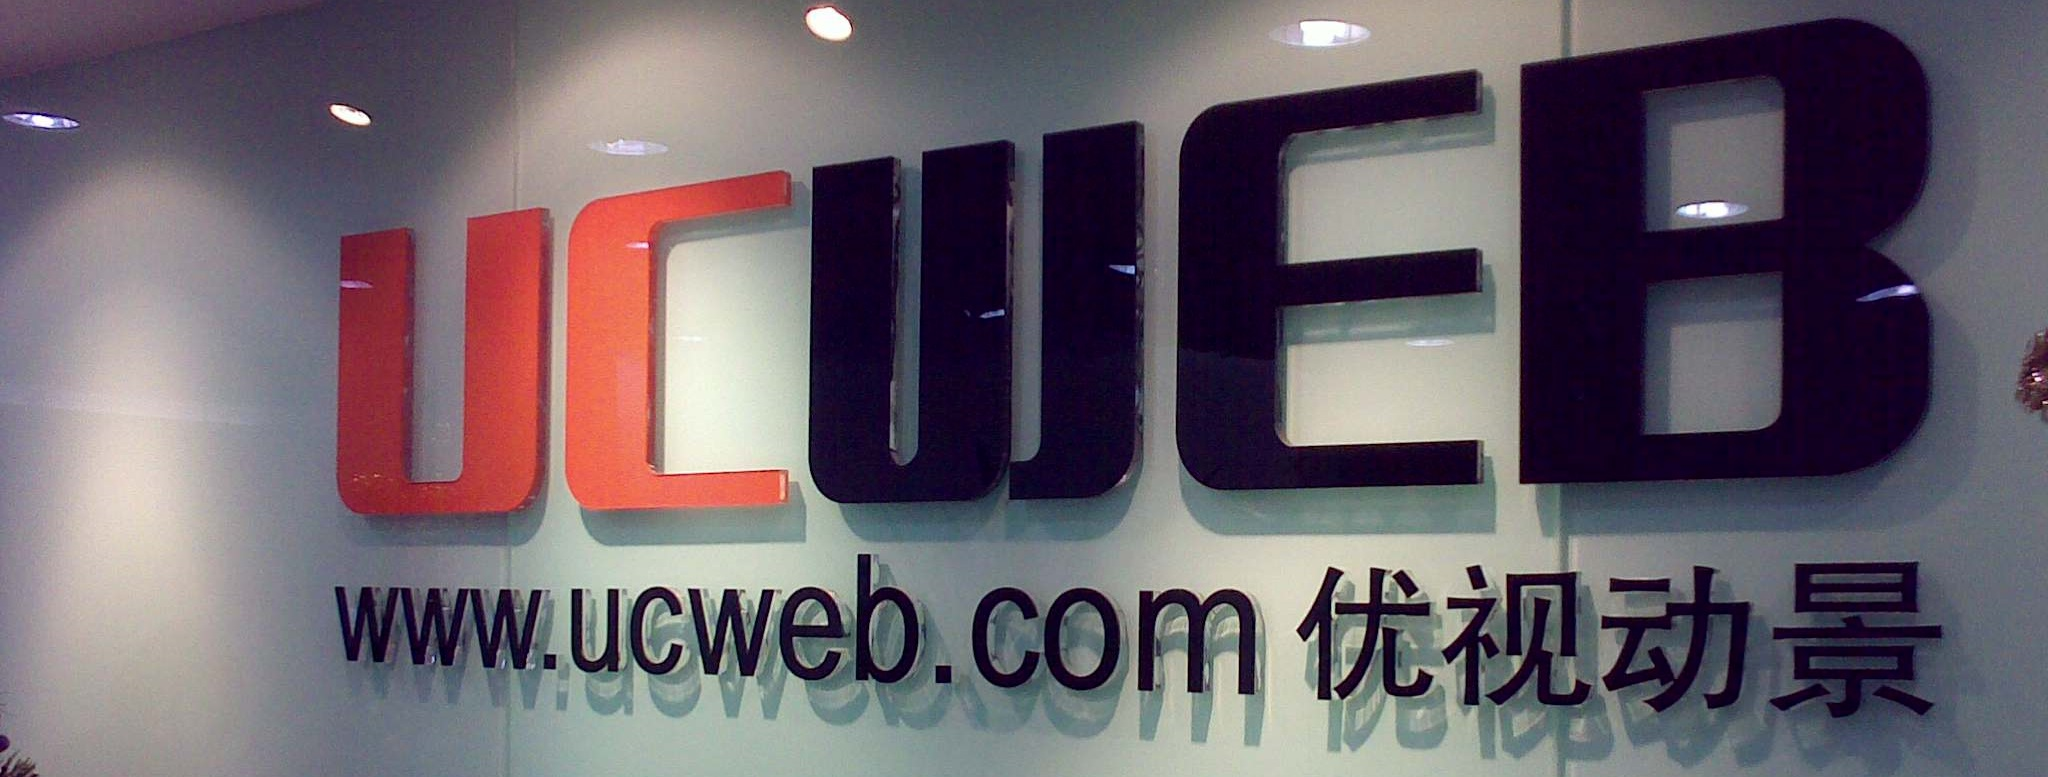 Chinese Browser-Maker UCWeb Cross 500 Million Users